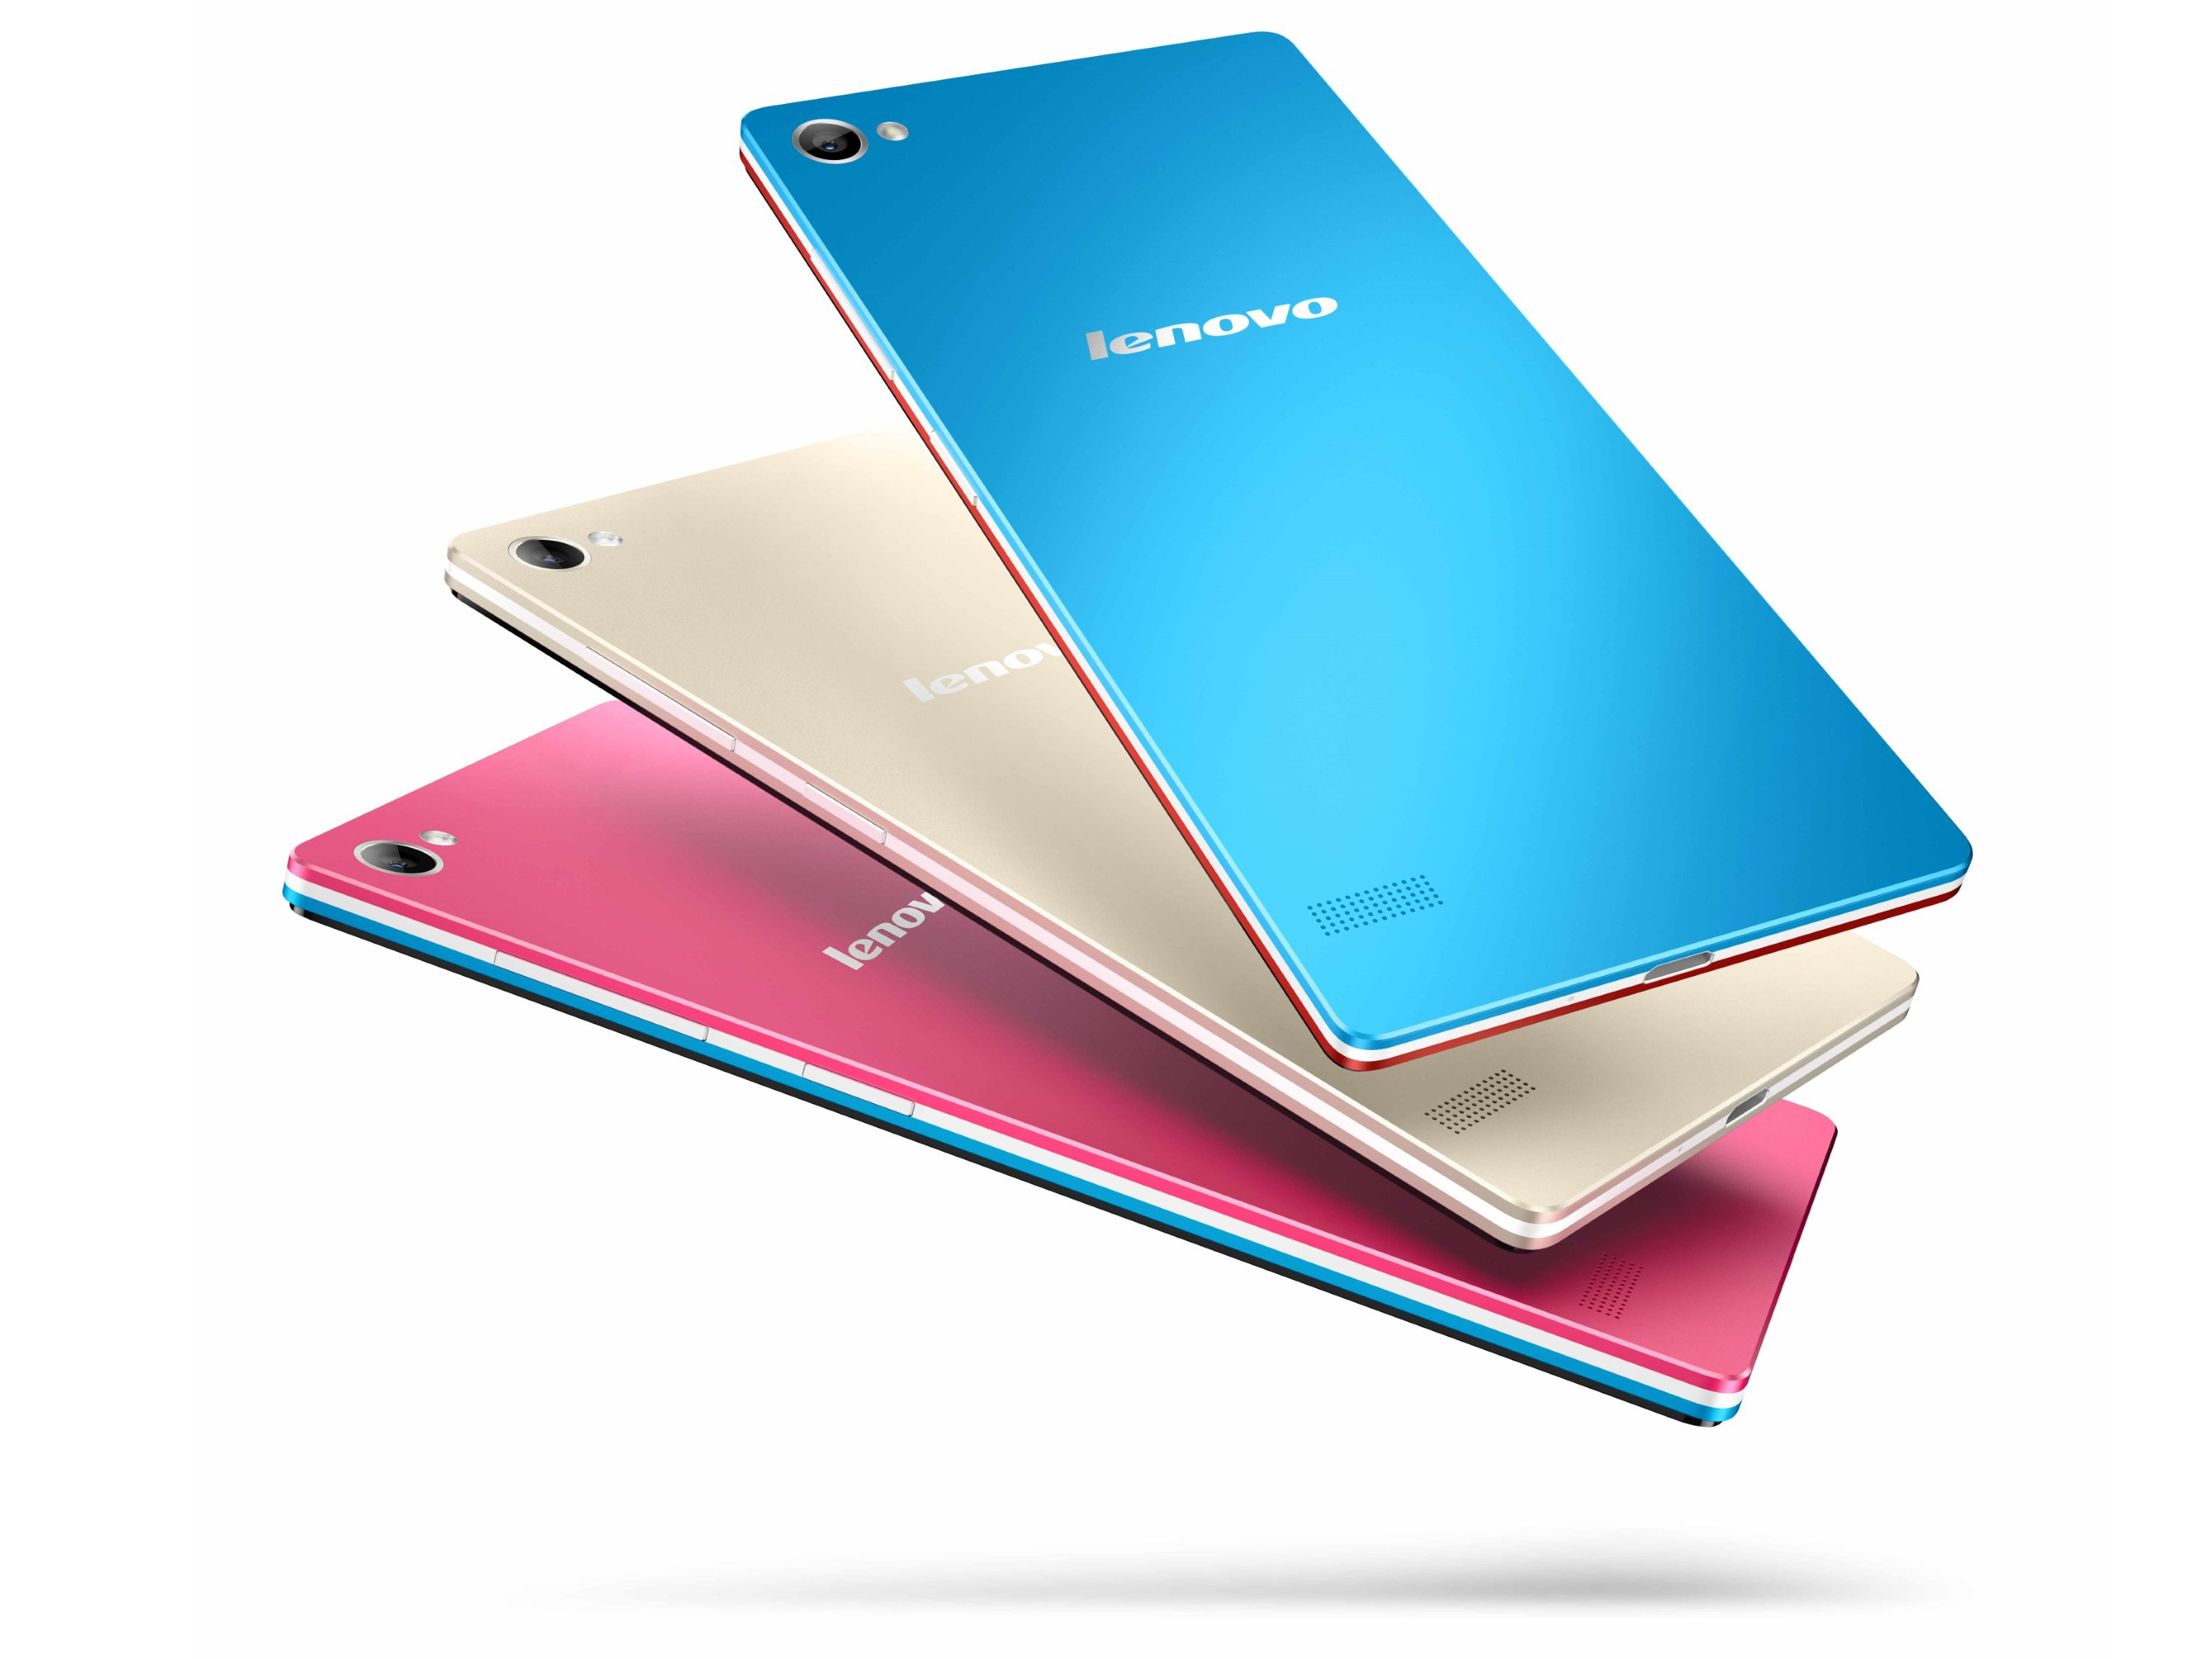 Lenovo Announced Vibe X2 Pro And P90 At CES 2015